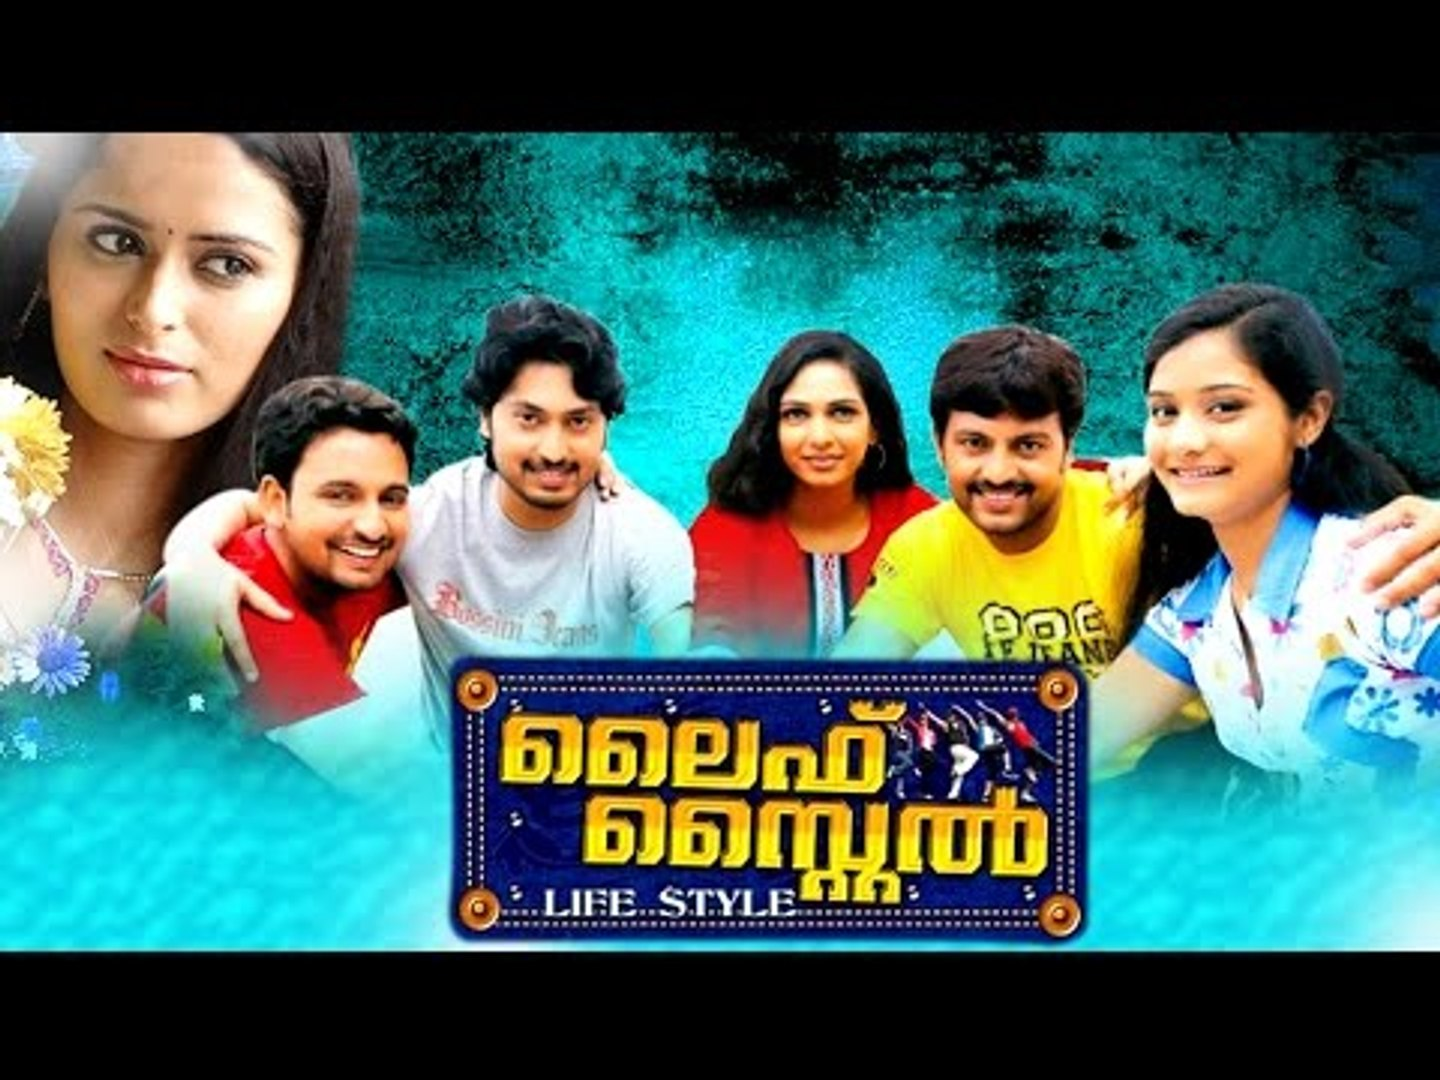 Malayalam Movie Life Style # Malayalam Full Movie 2017 Upload # Malayalam Full Movie # 2017 Uploads